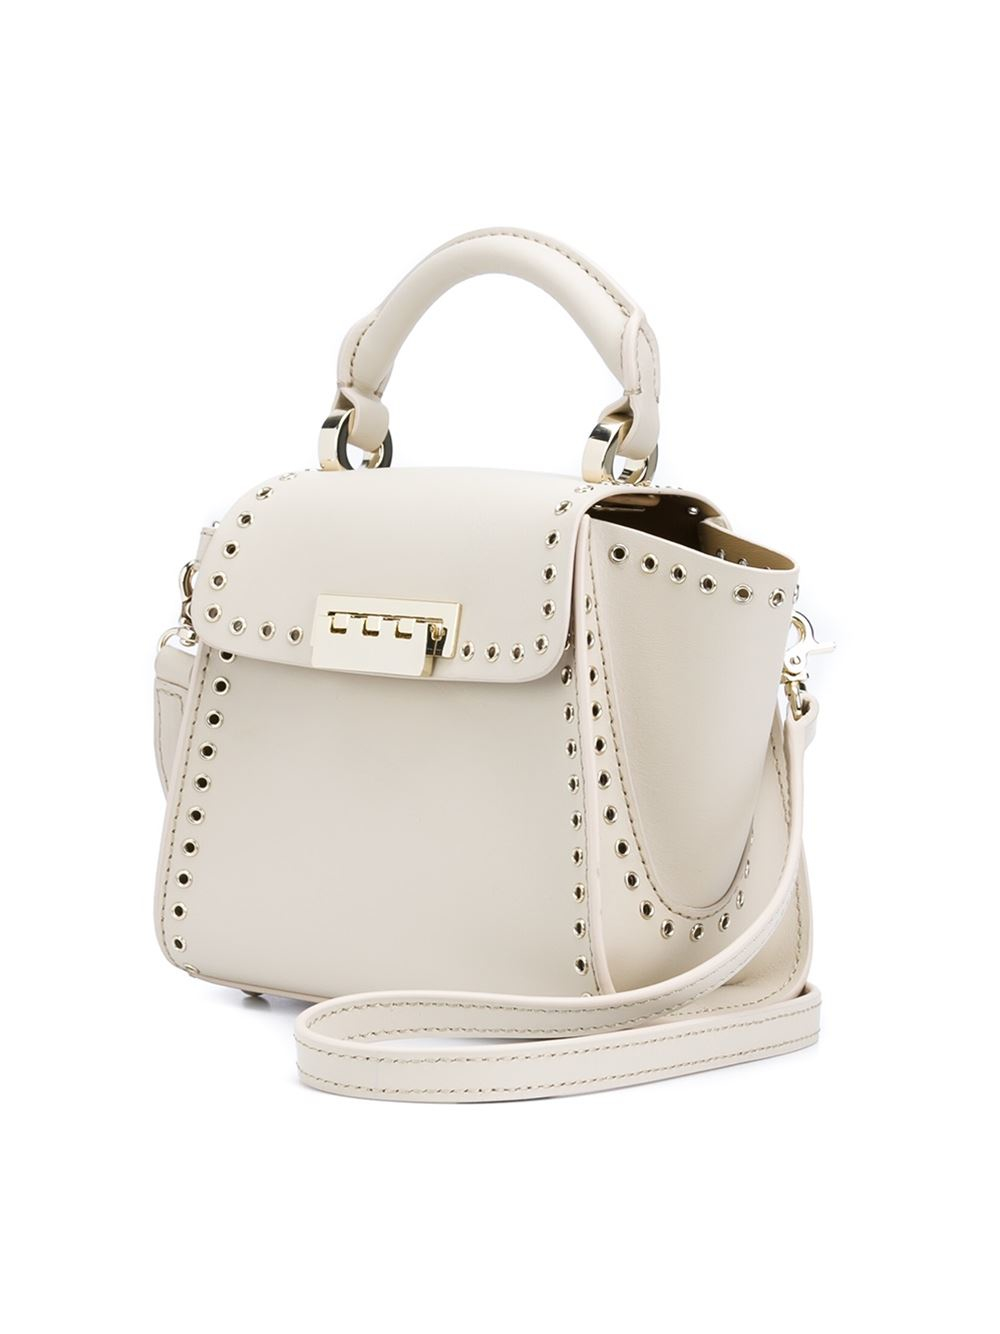 Zac Zac Posen Leather Eartha Iconic Crossbody Bag In